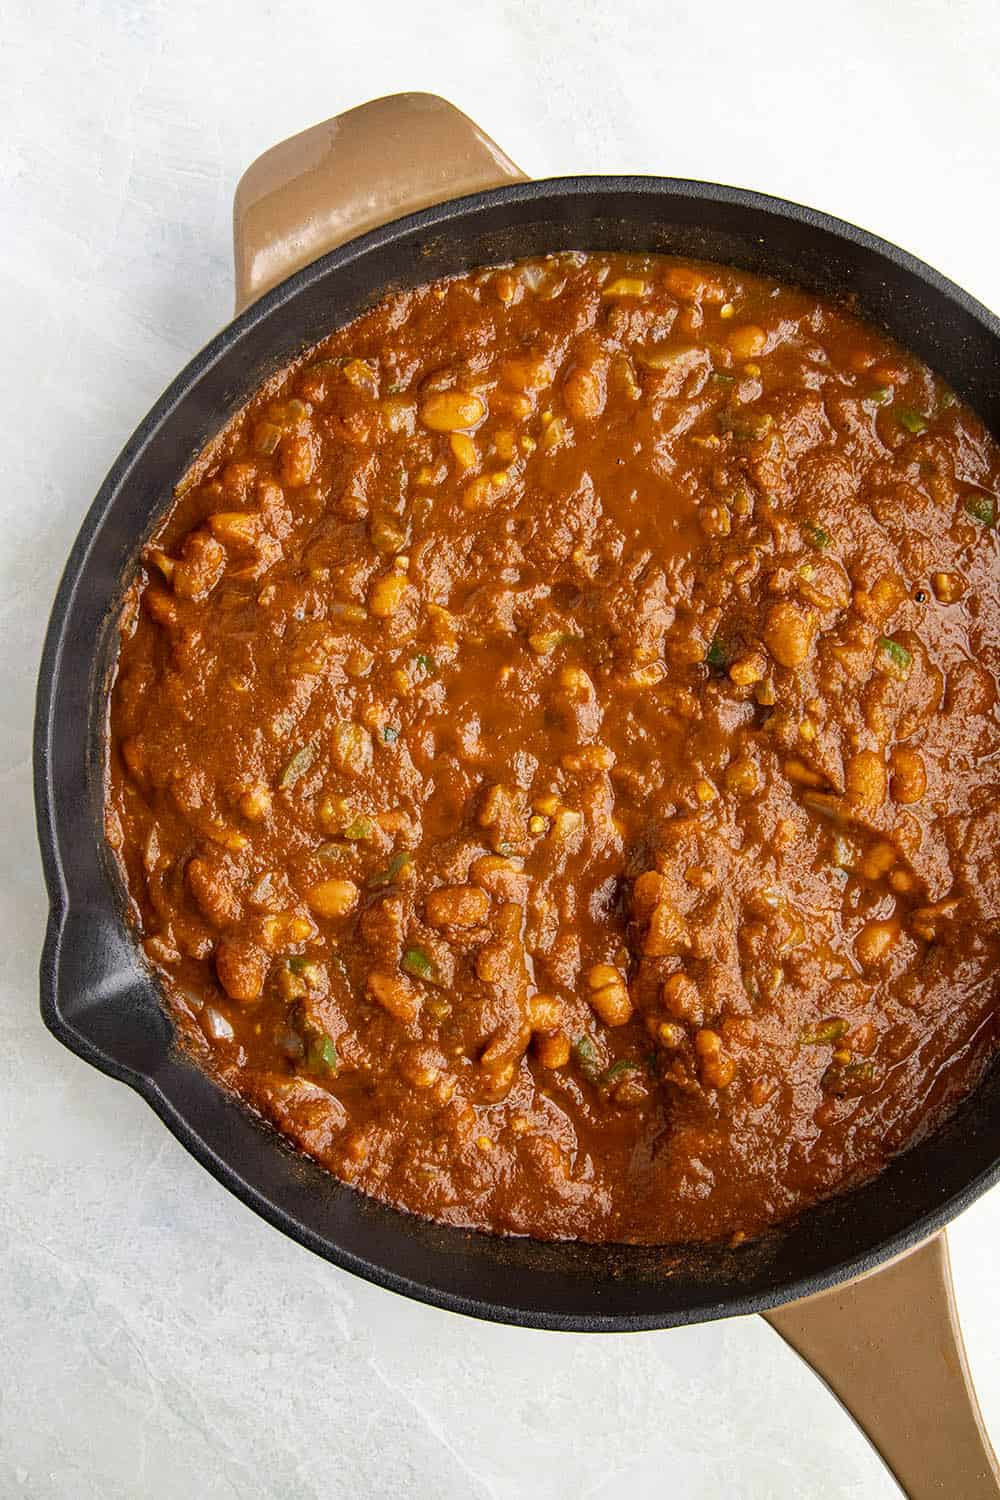 Cooking down the ranchero sauce and beans to make Huevos Ranchers Casserole